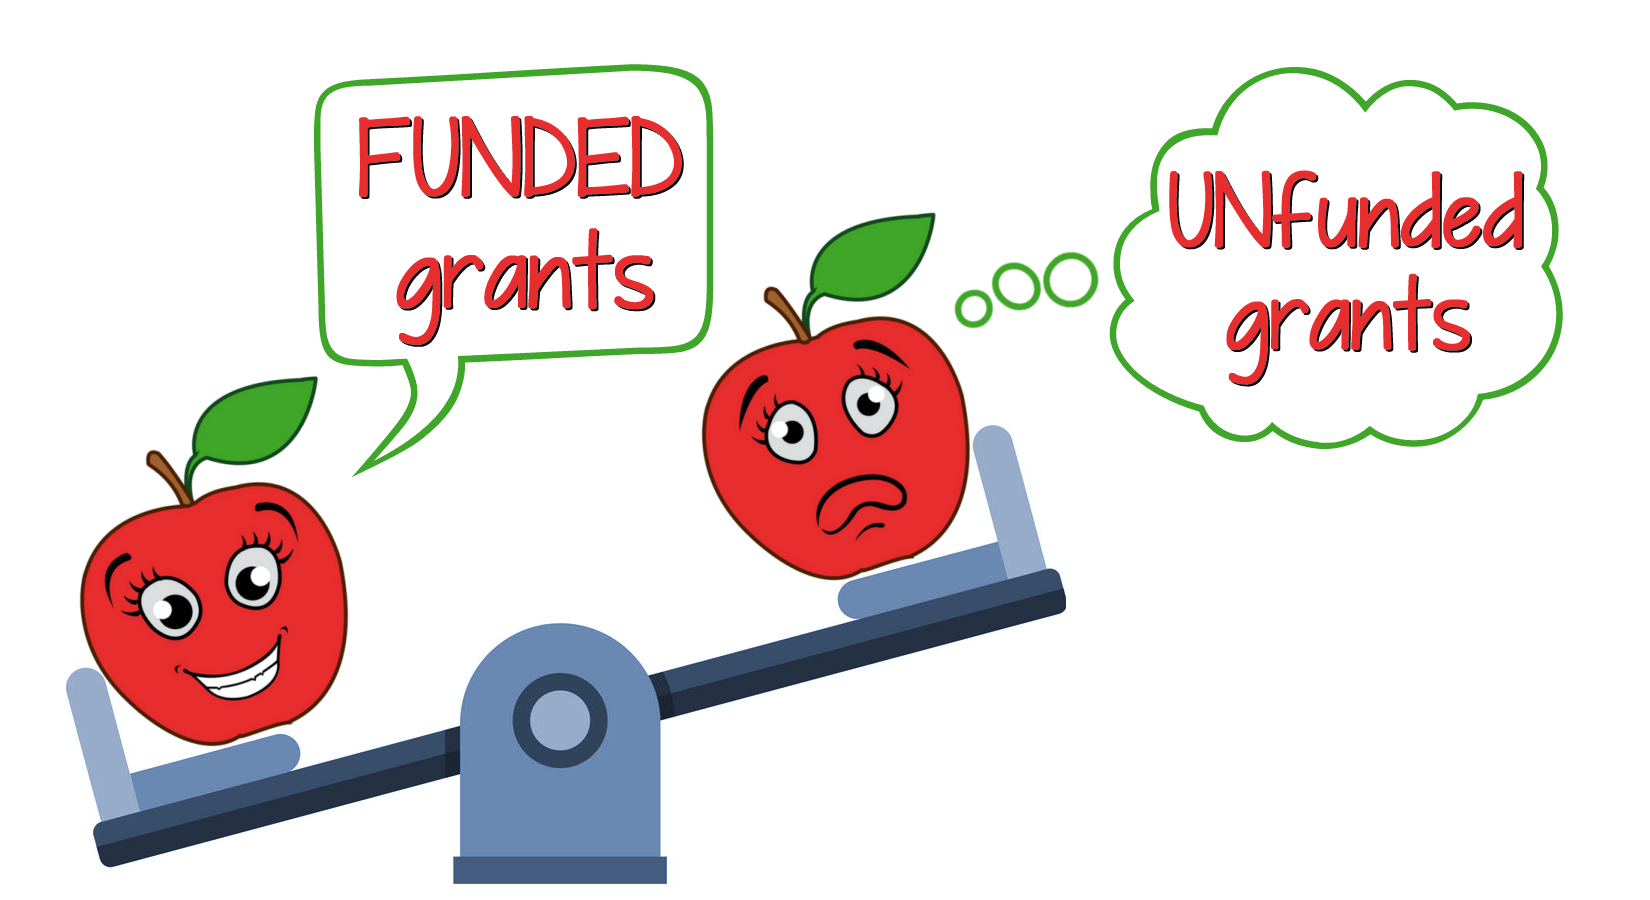 Happy Funded Apple and Sad UNfunded Apple